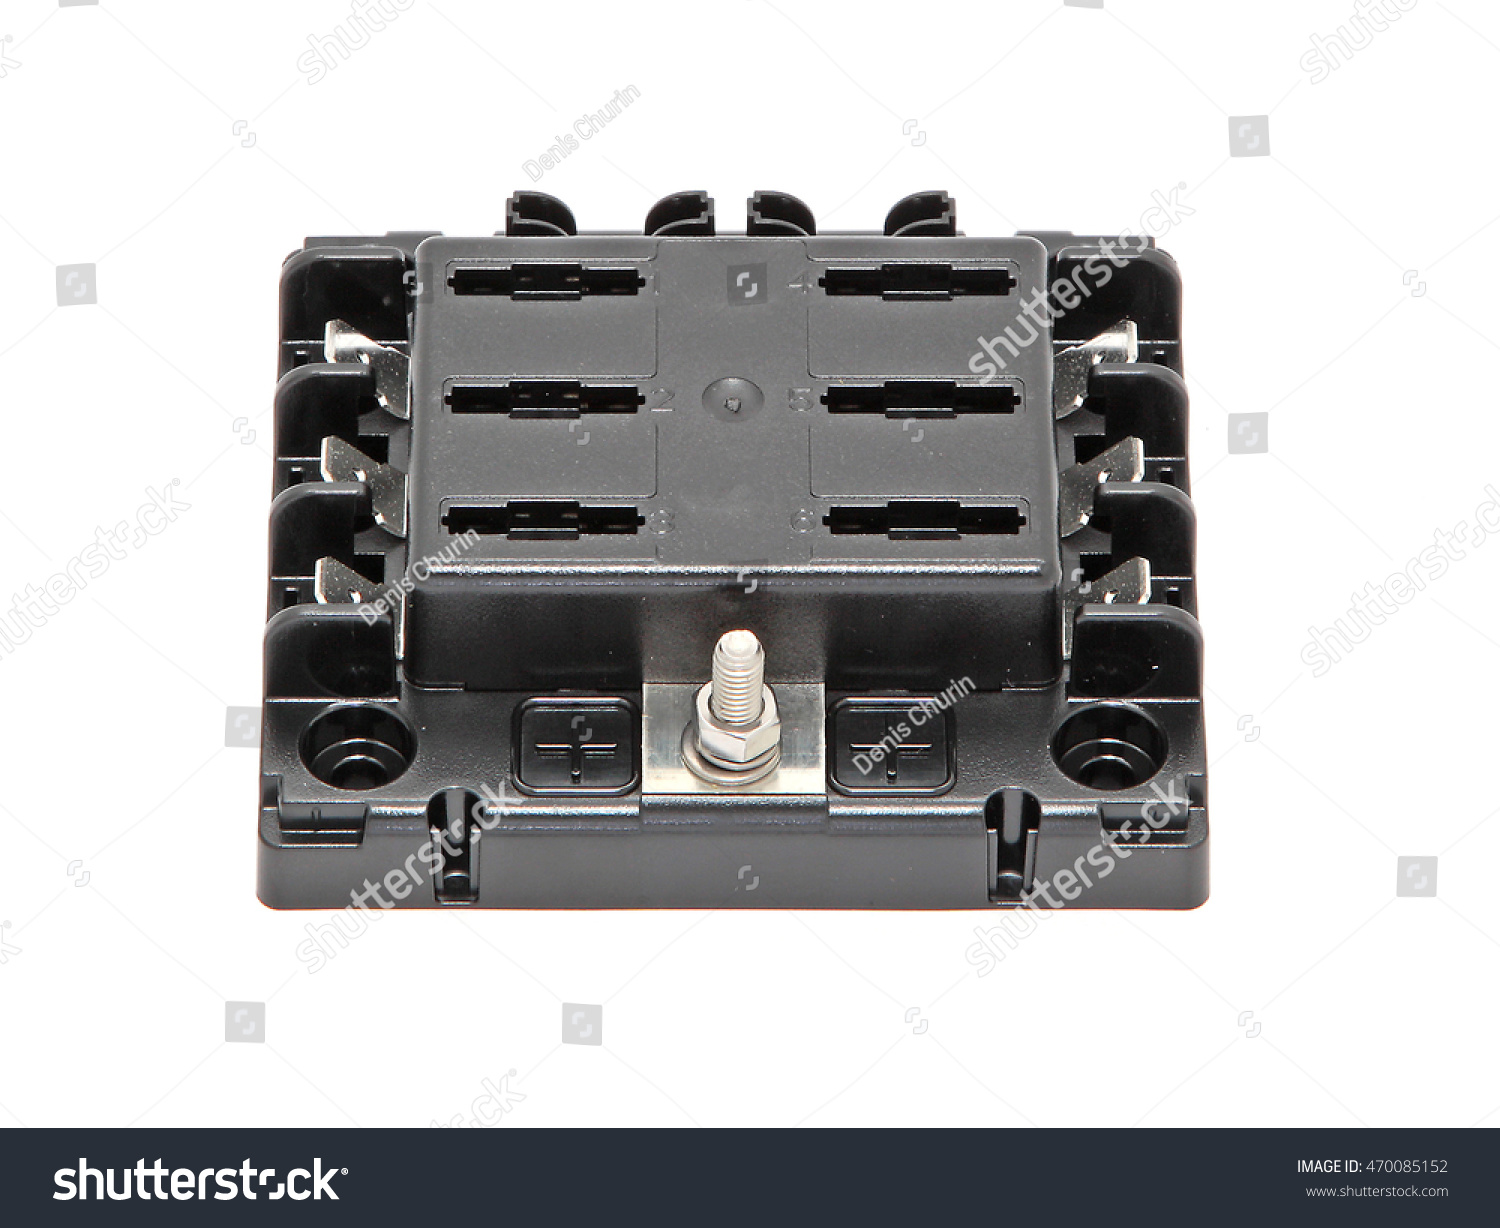 Metal Fuse Box Wiring Library Black Plastic Waterproof Marine With Contacts And Without Cap Front Upper View